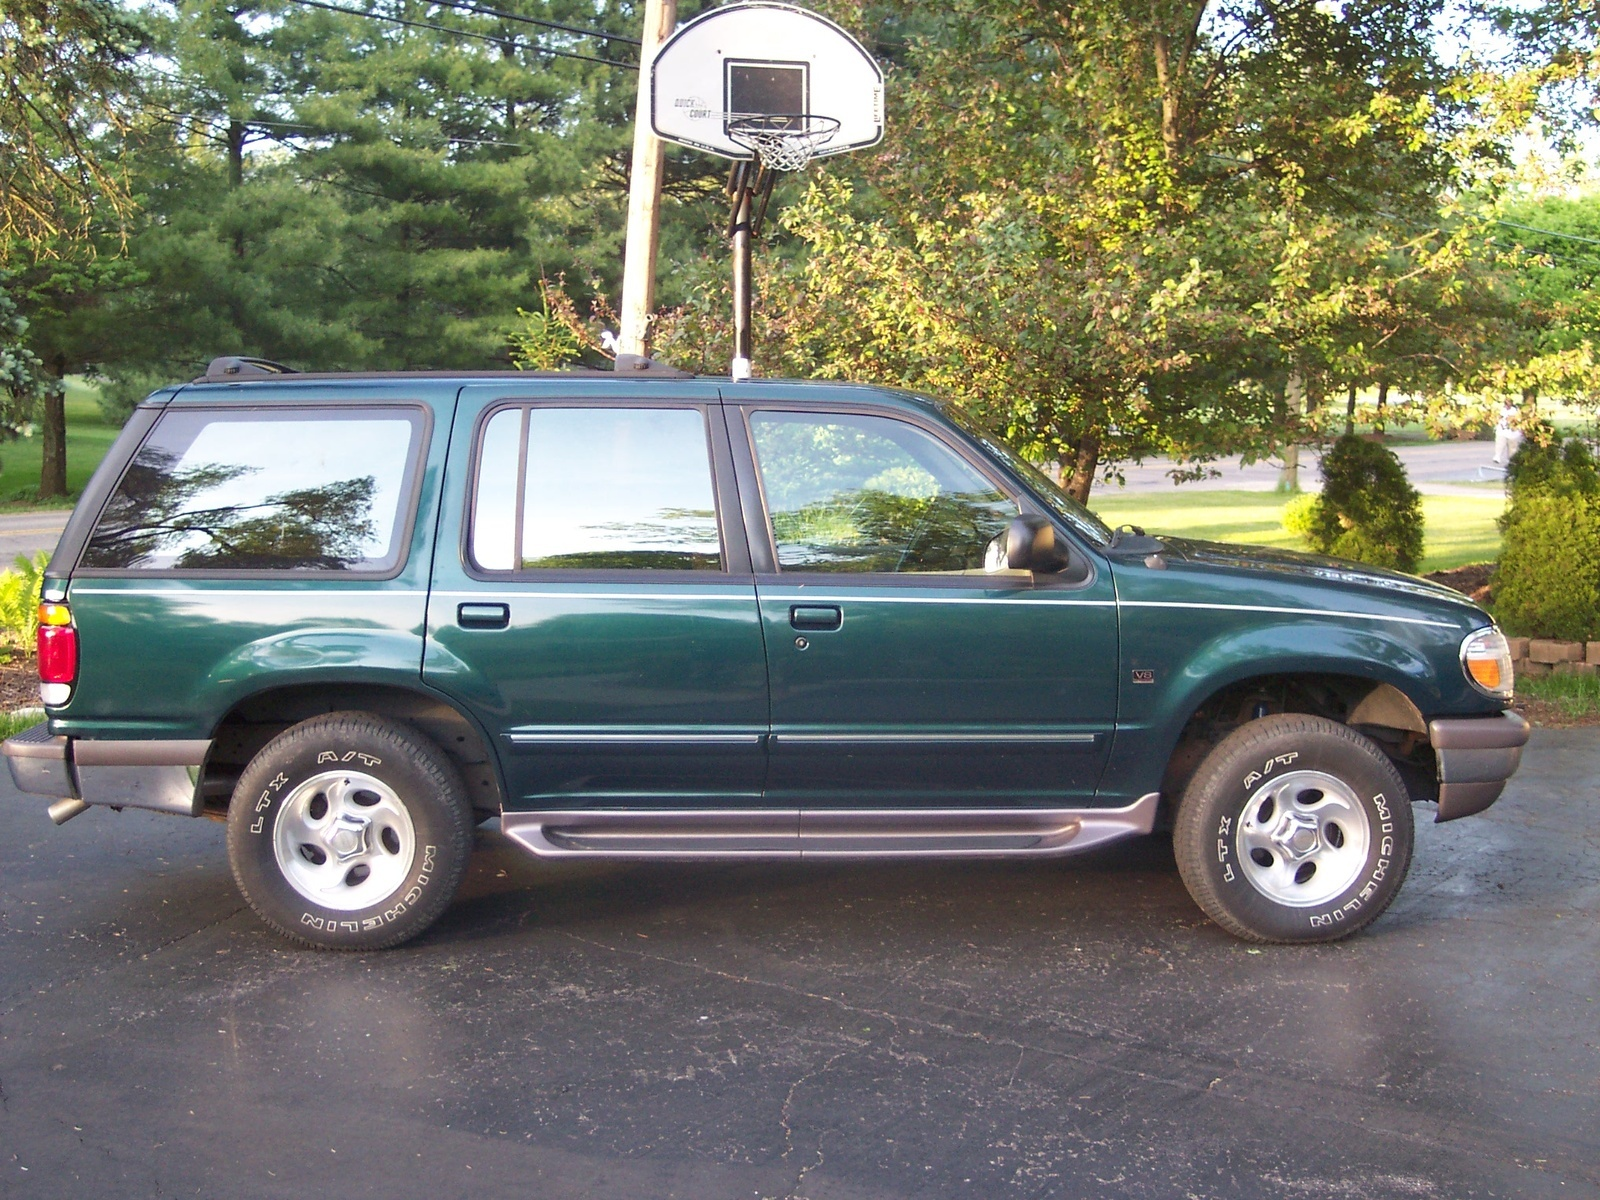 hight resolution of hi i have a ford explorer 4l v6 1997 i it dont want to start we check the fuel pump and spark plugs and thats fine when you start it back fires